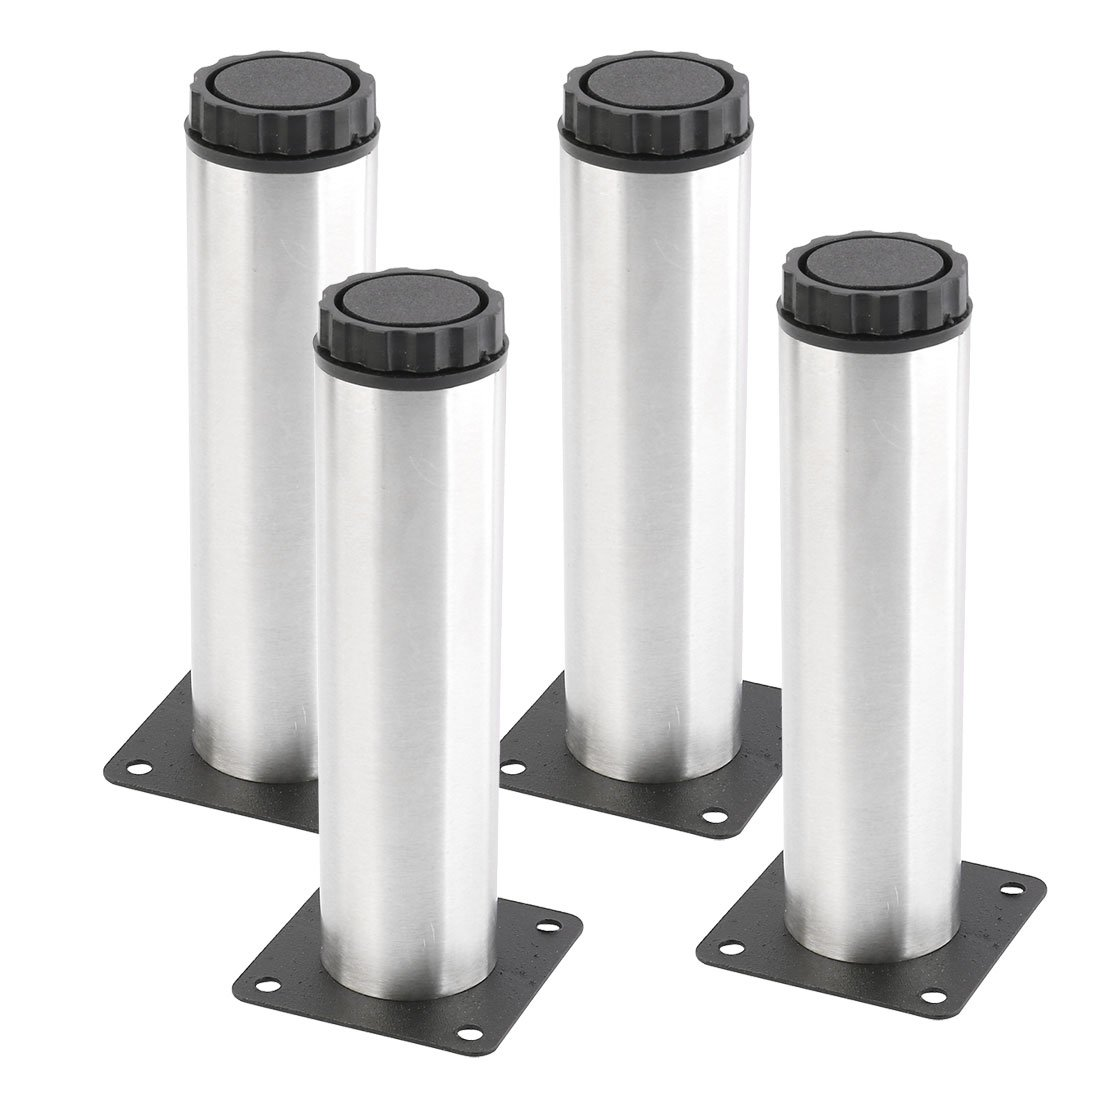 uxcell Stainless Steel Home Rustproof Furniture Chair Sofa Cabinet Protector Foot Legs 4pcs